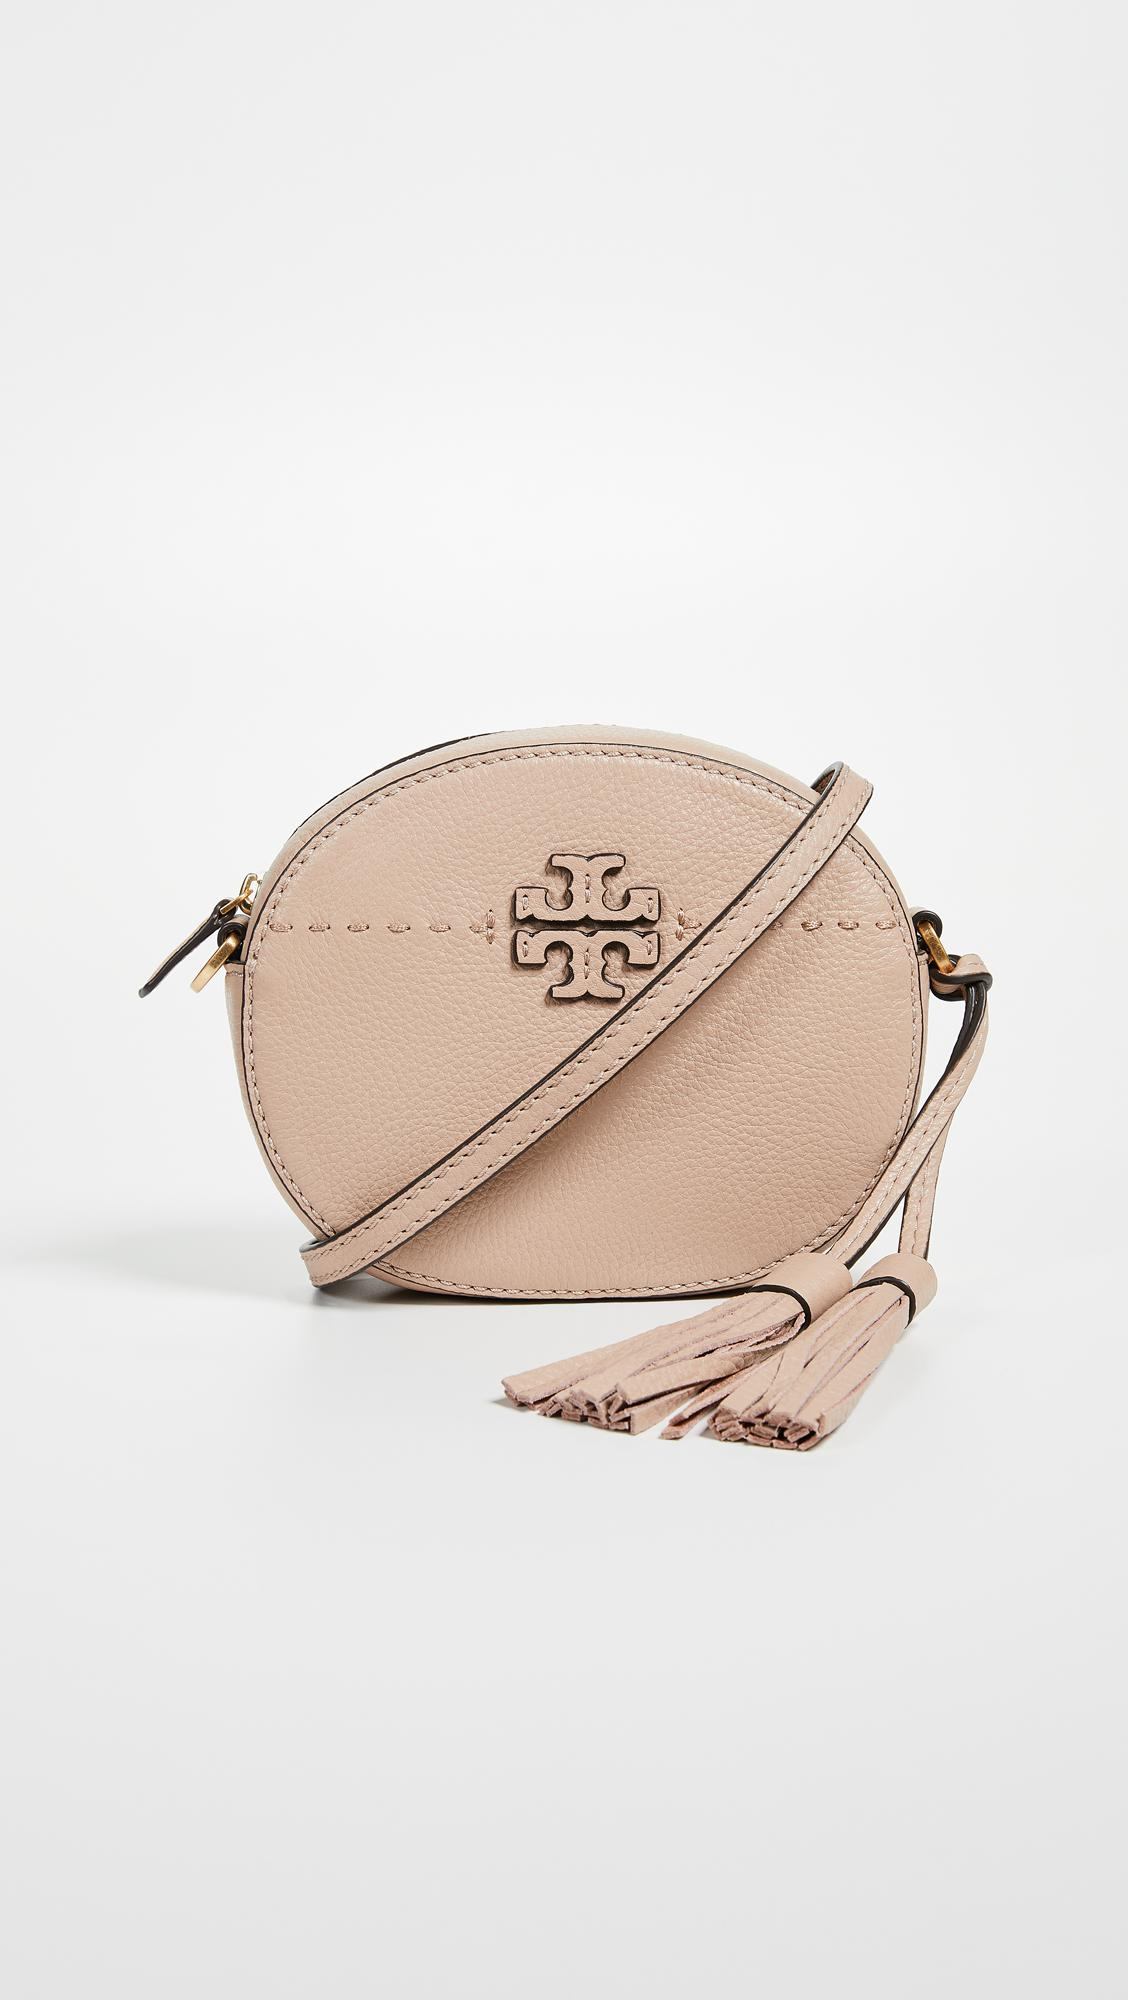 fdcbb8e9664e Lyst - Tory Burch Mcgraw Round Cross Body Bag in Natural